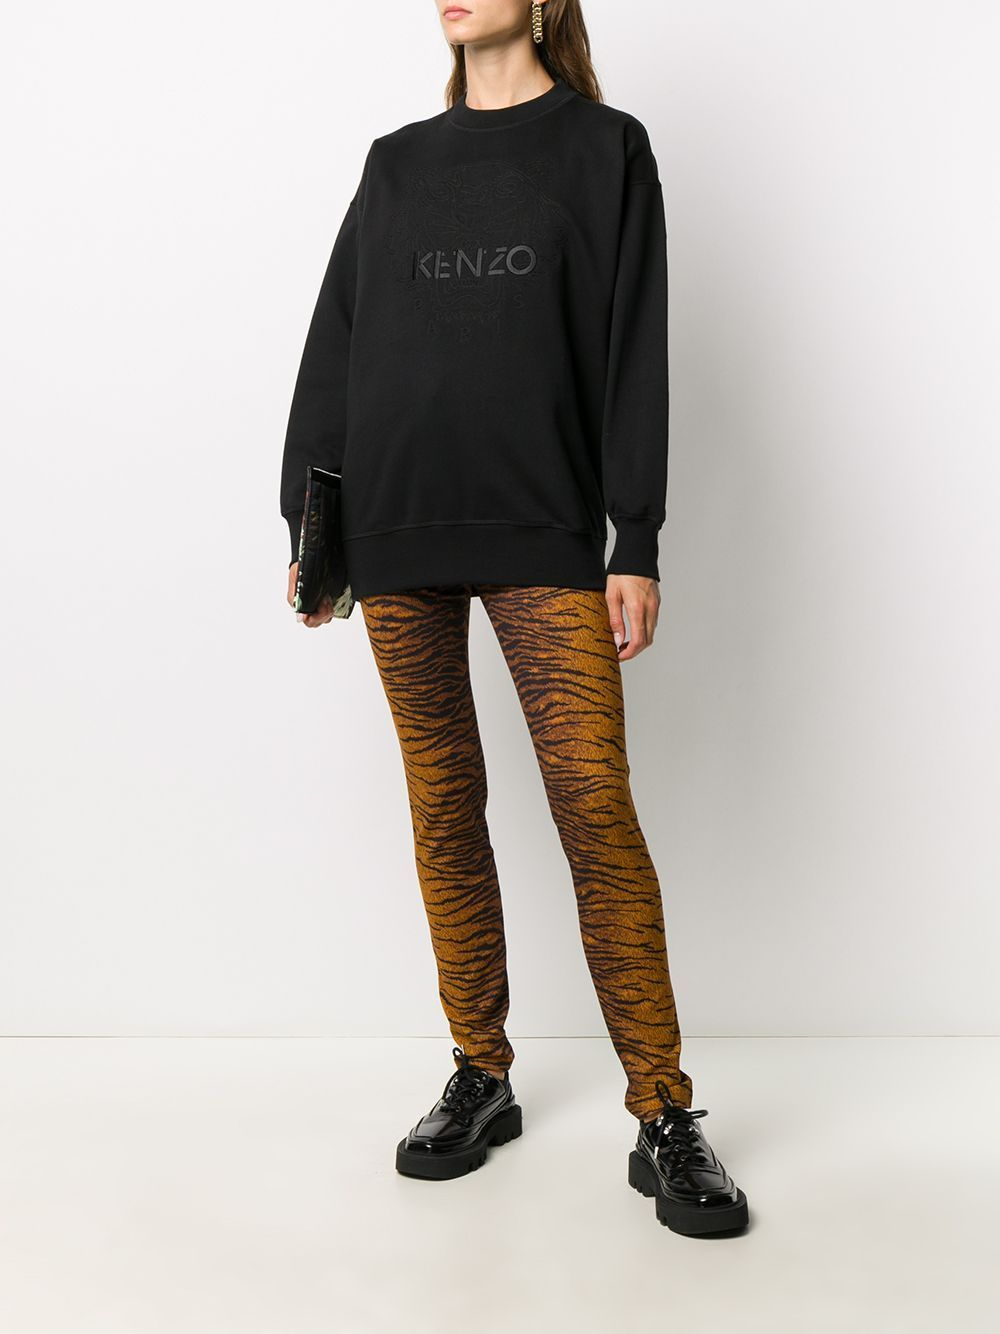 KENZO WOMEN Tiger Logo Sweatshirt Dress Black